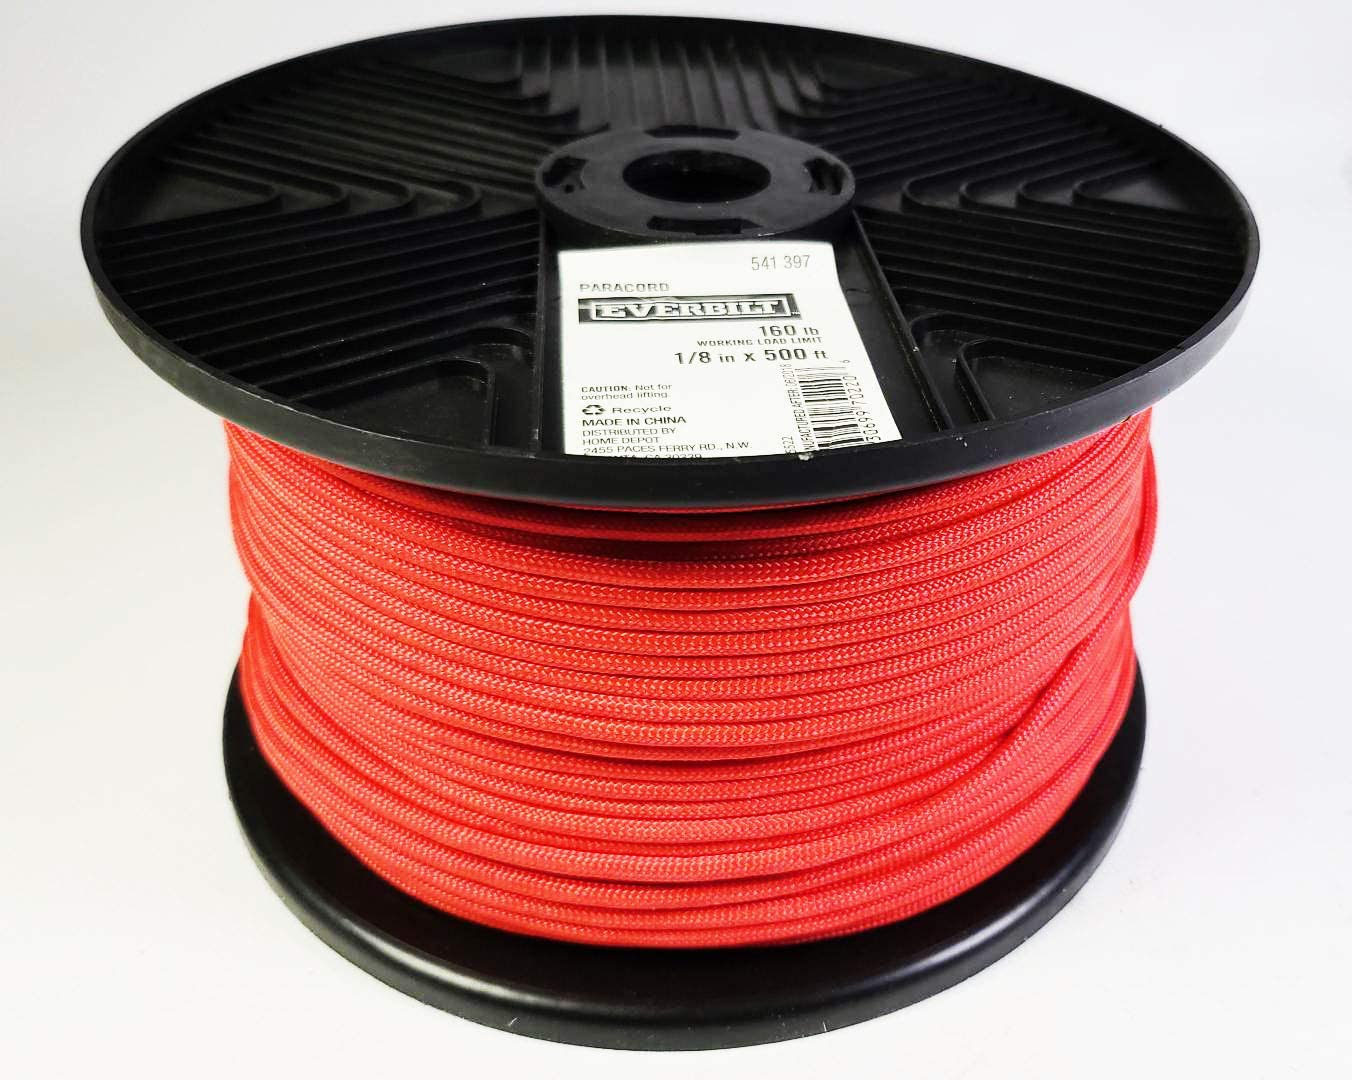 Red Roll Everbilt Paracord 160 Lb Working Limit 1//8x 500 Ft